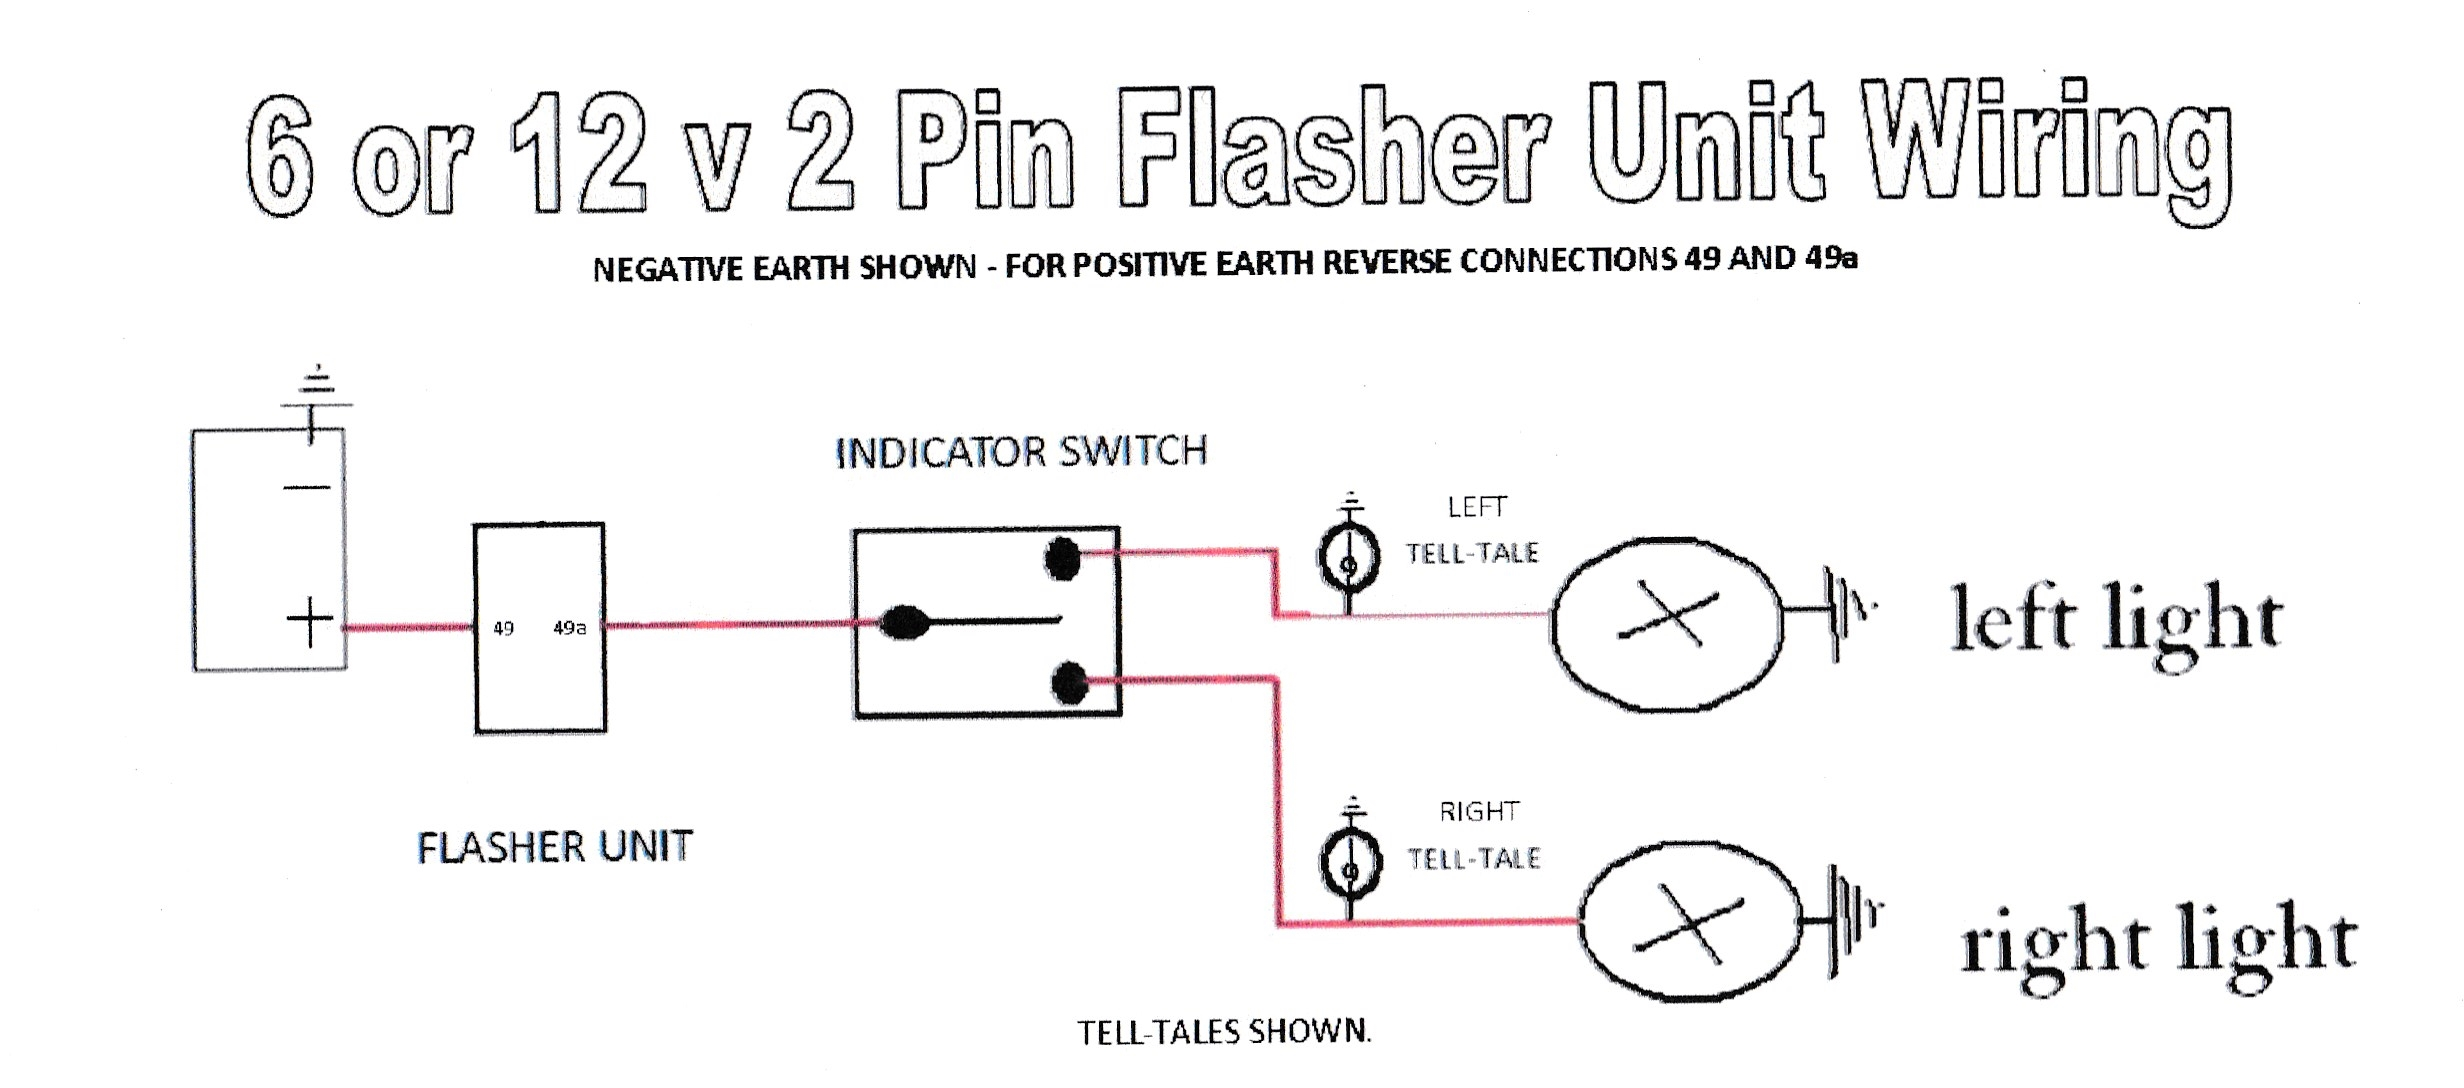 IMG_20150323_0001_NEW 3 pin flasher unit wiring diagram 550 flasher wiring \u2022 wiring indicator flasher relay wiring diagram at edmiracle.co